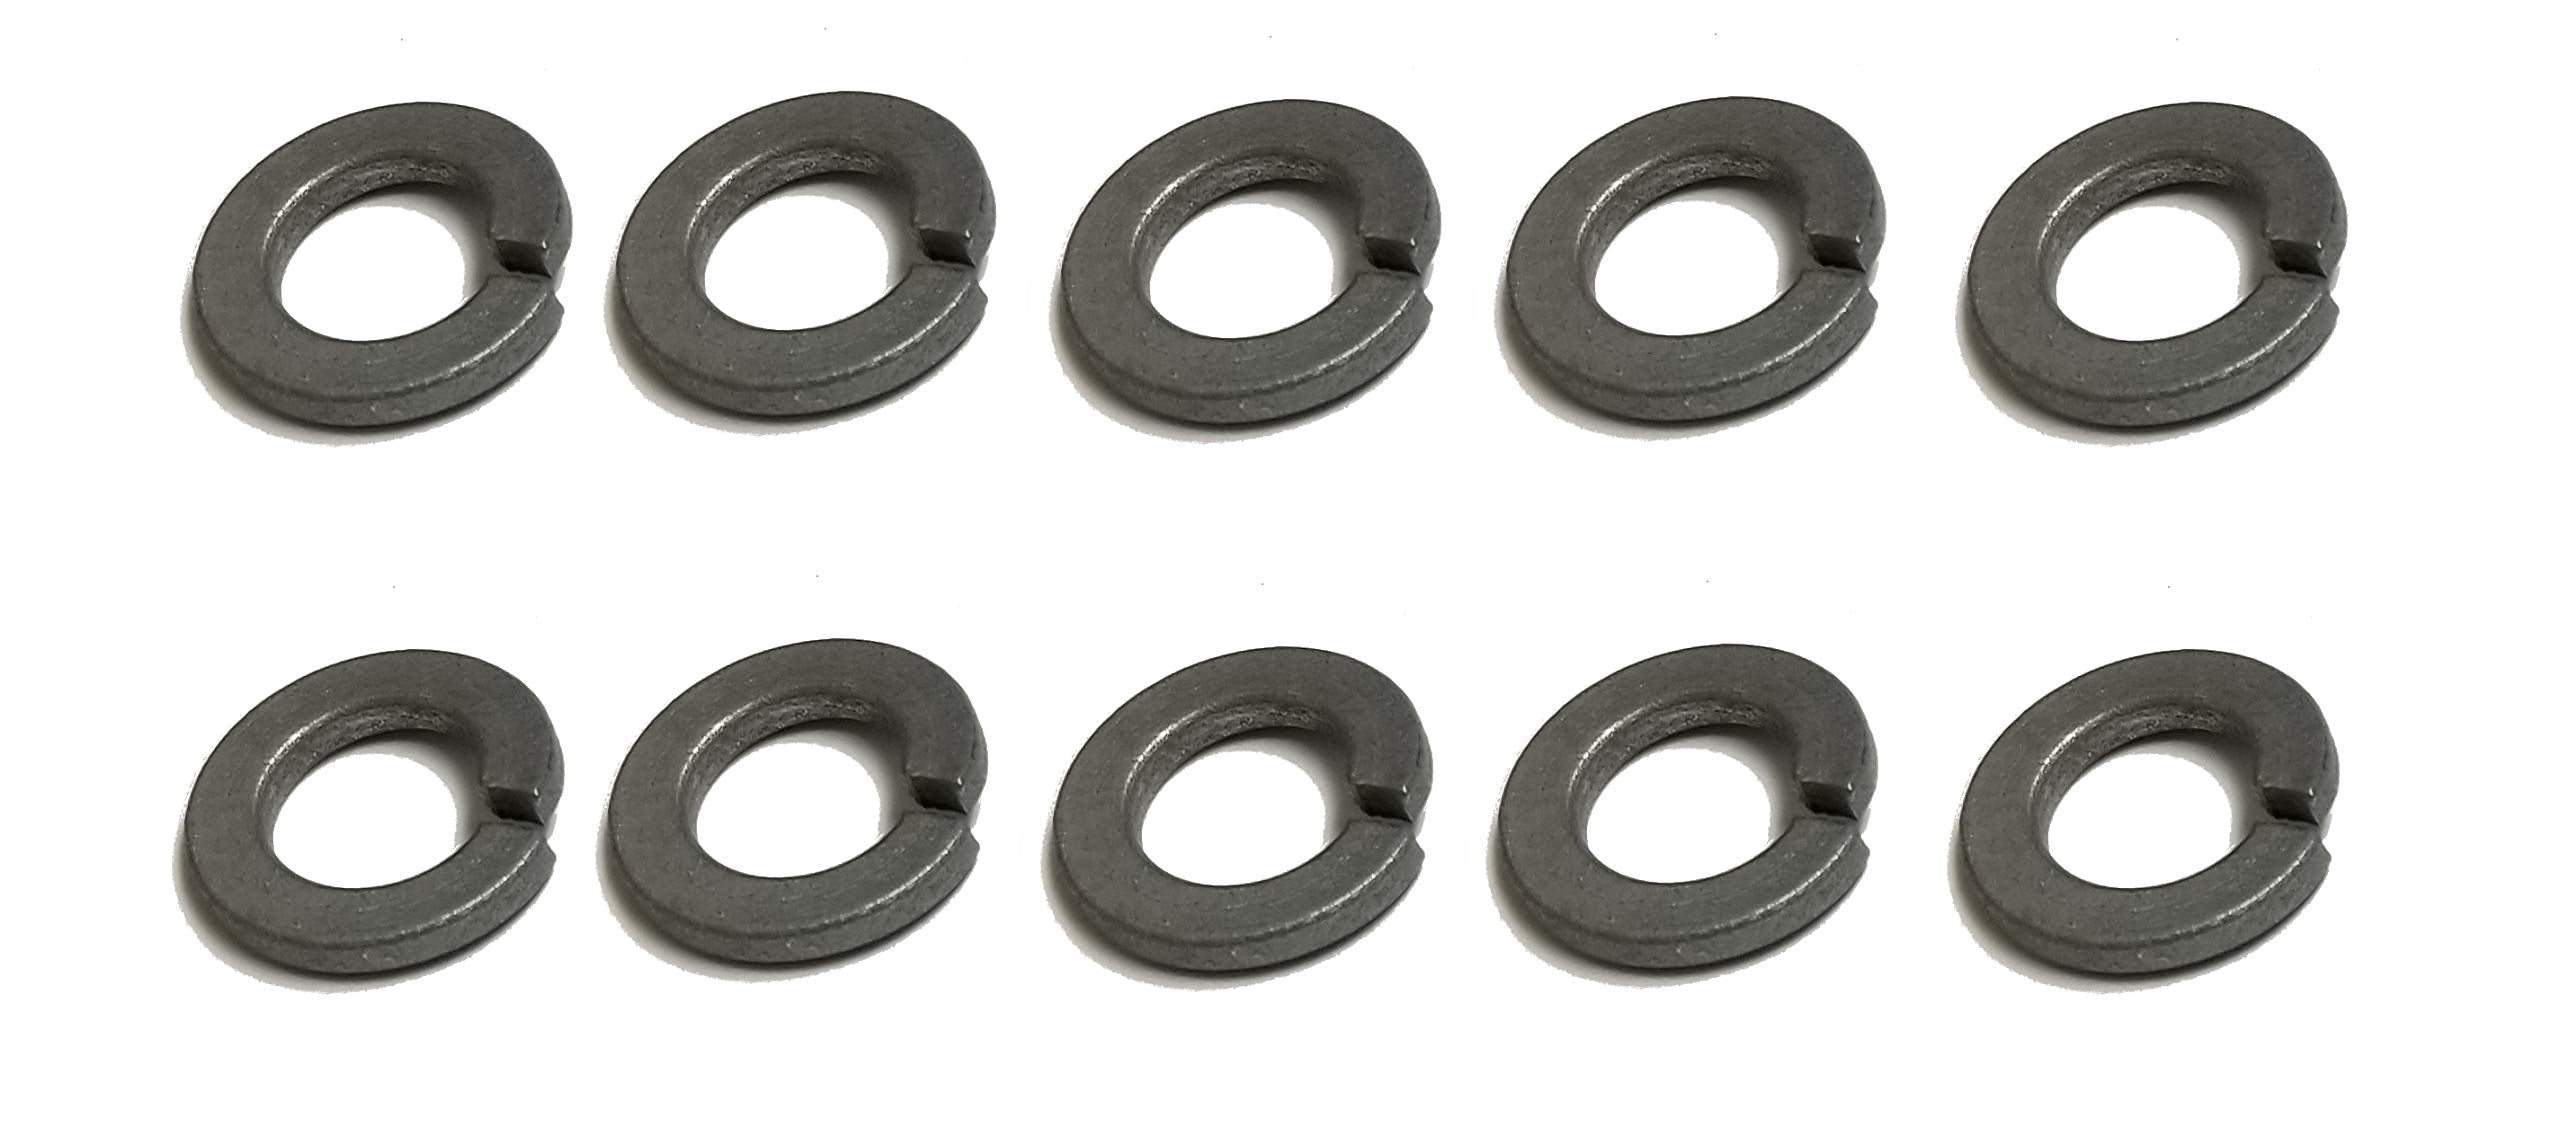 John Deere Original Equipment Lock Washer (10 Pack) - 12M7065